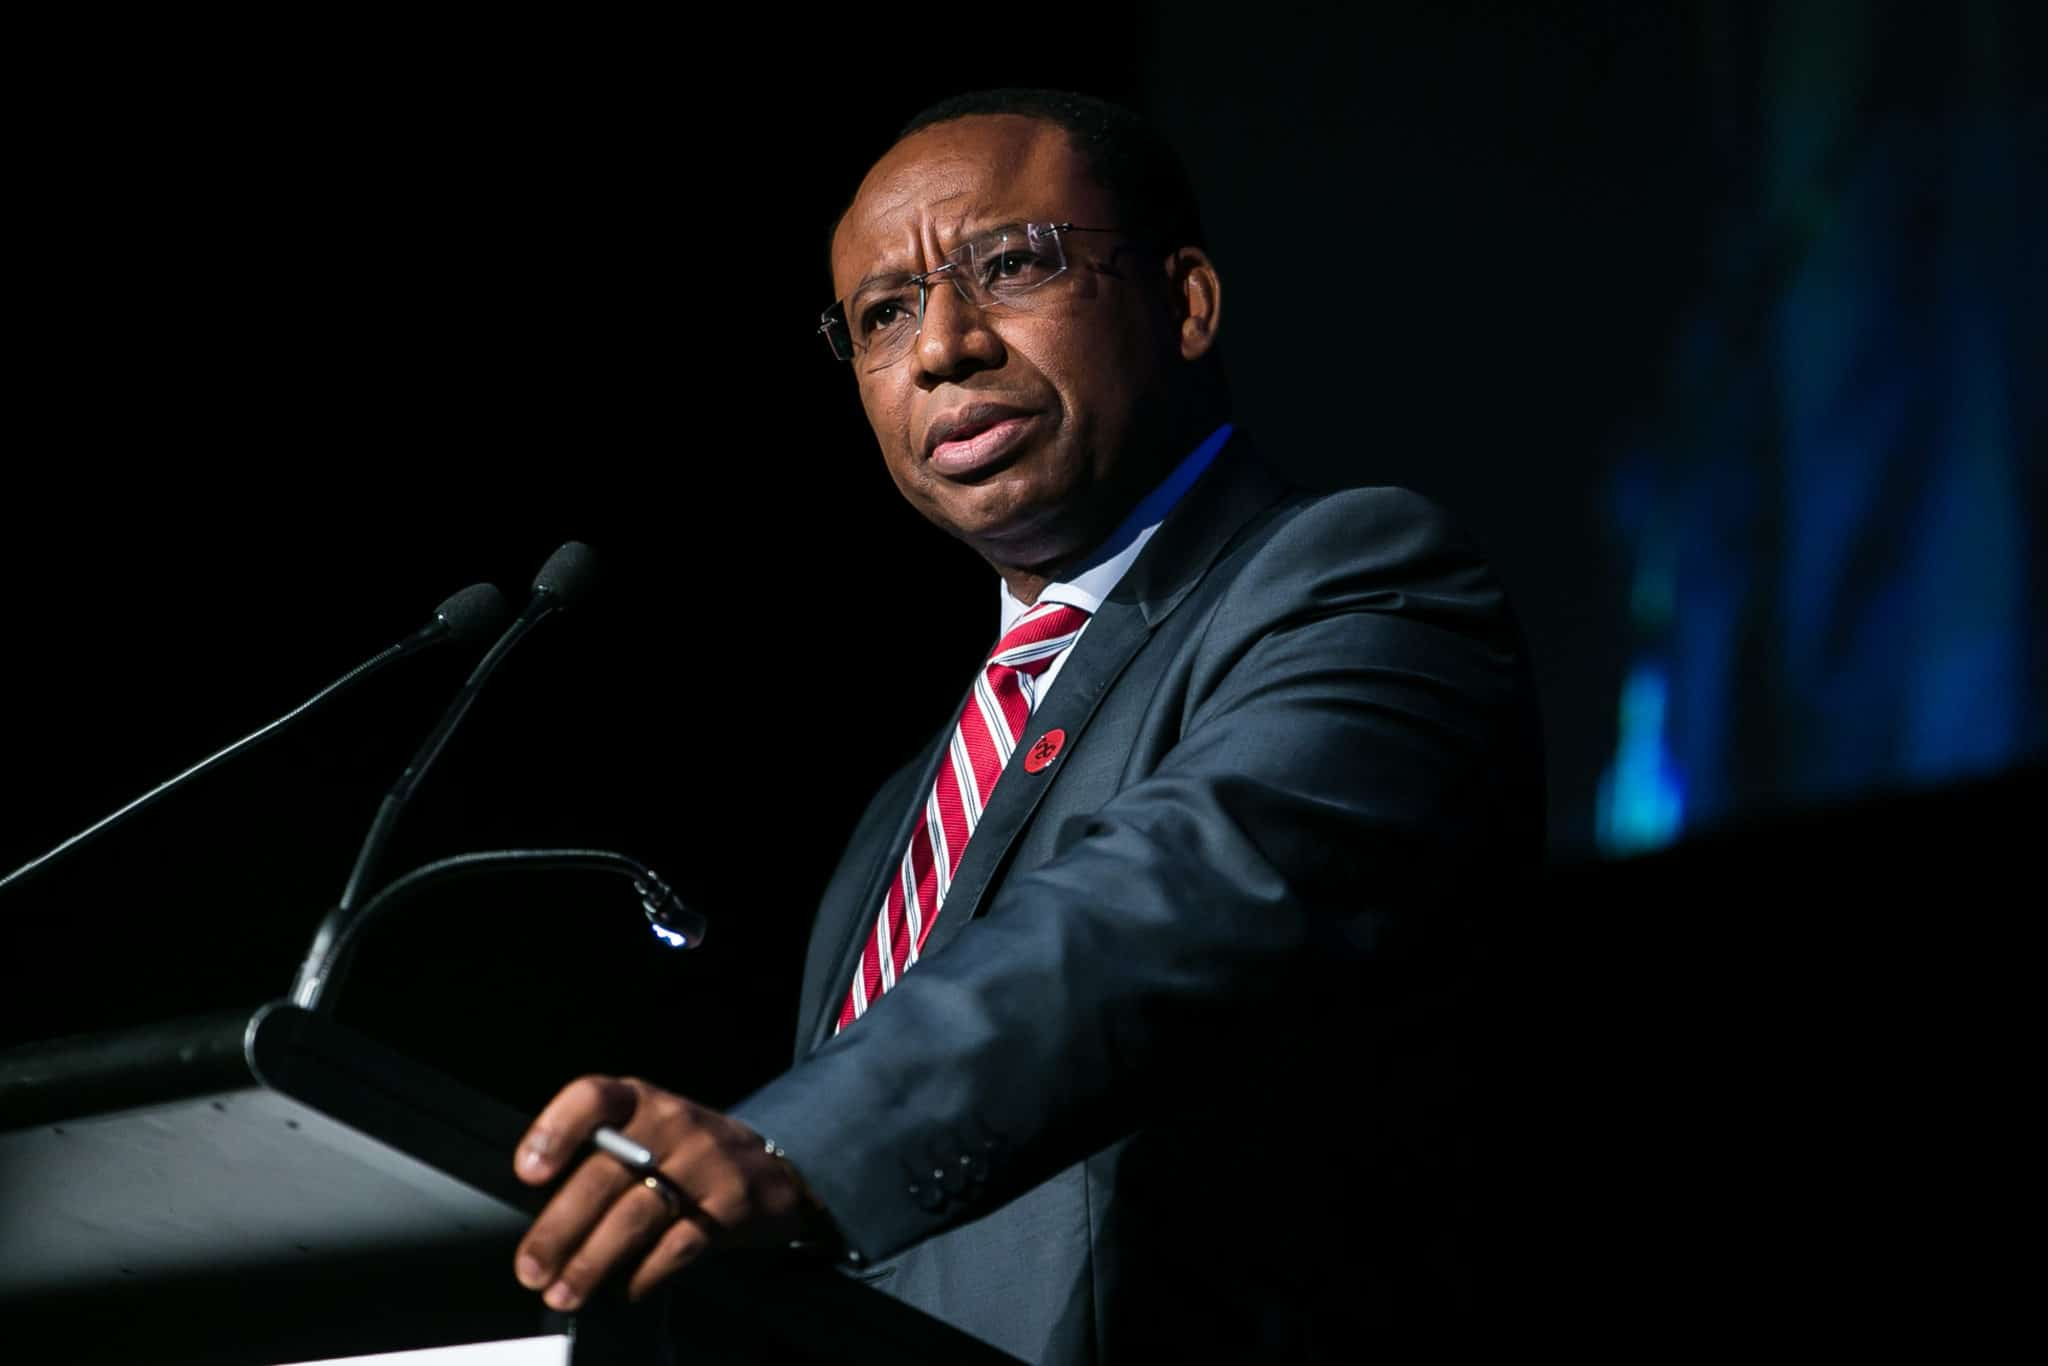 Absa Group Board Ousts CEO Mminele Over Strategy Differences